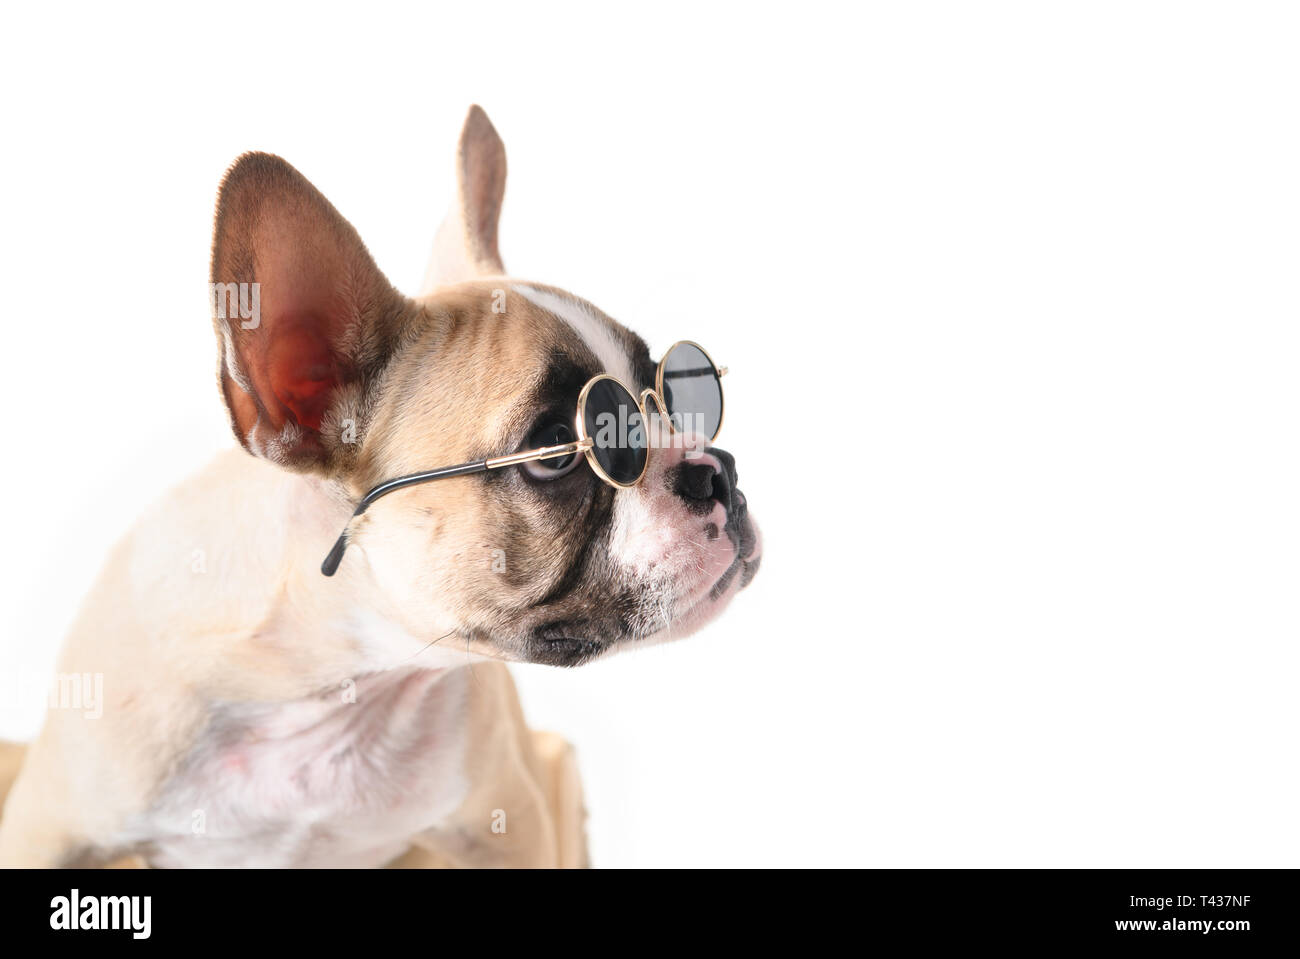 359c2b5b Cute french bulldog wear sunglass looking right side isolated on white  background, pet in summer